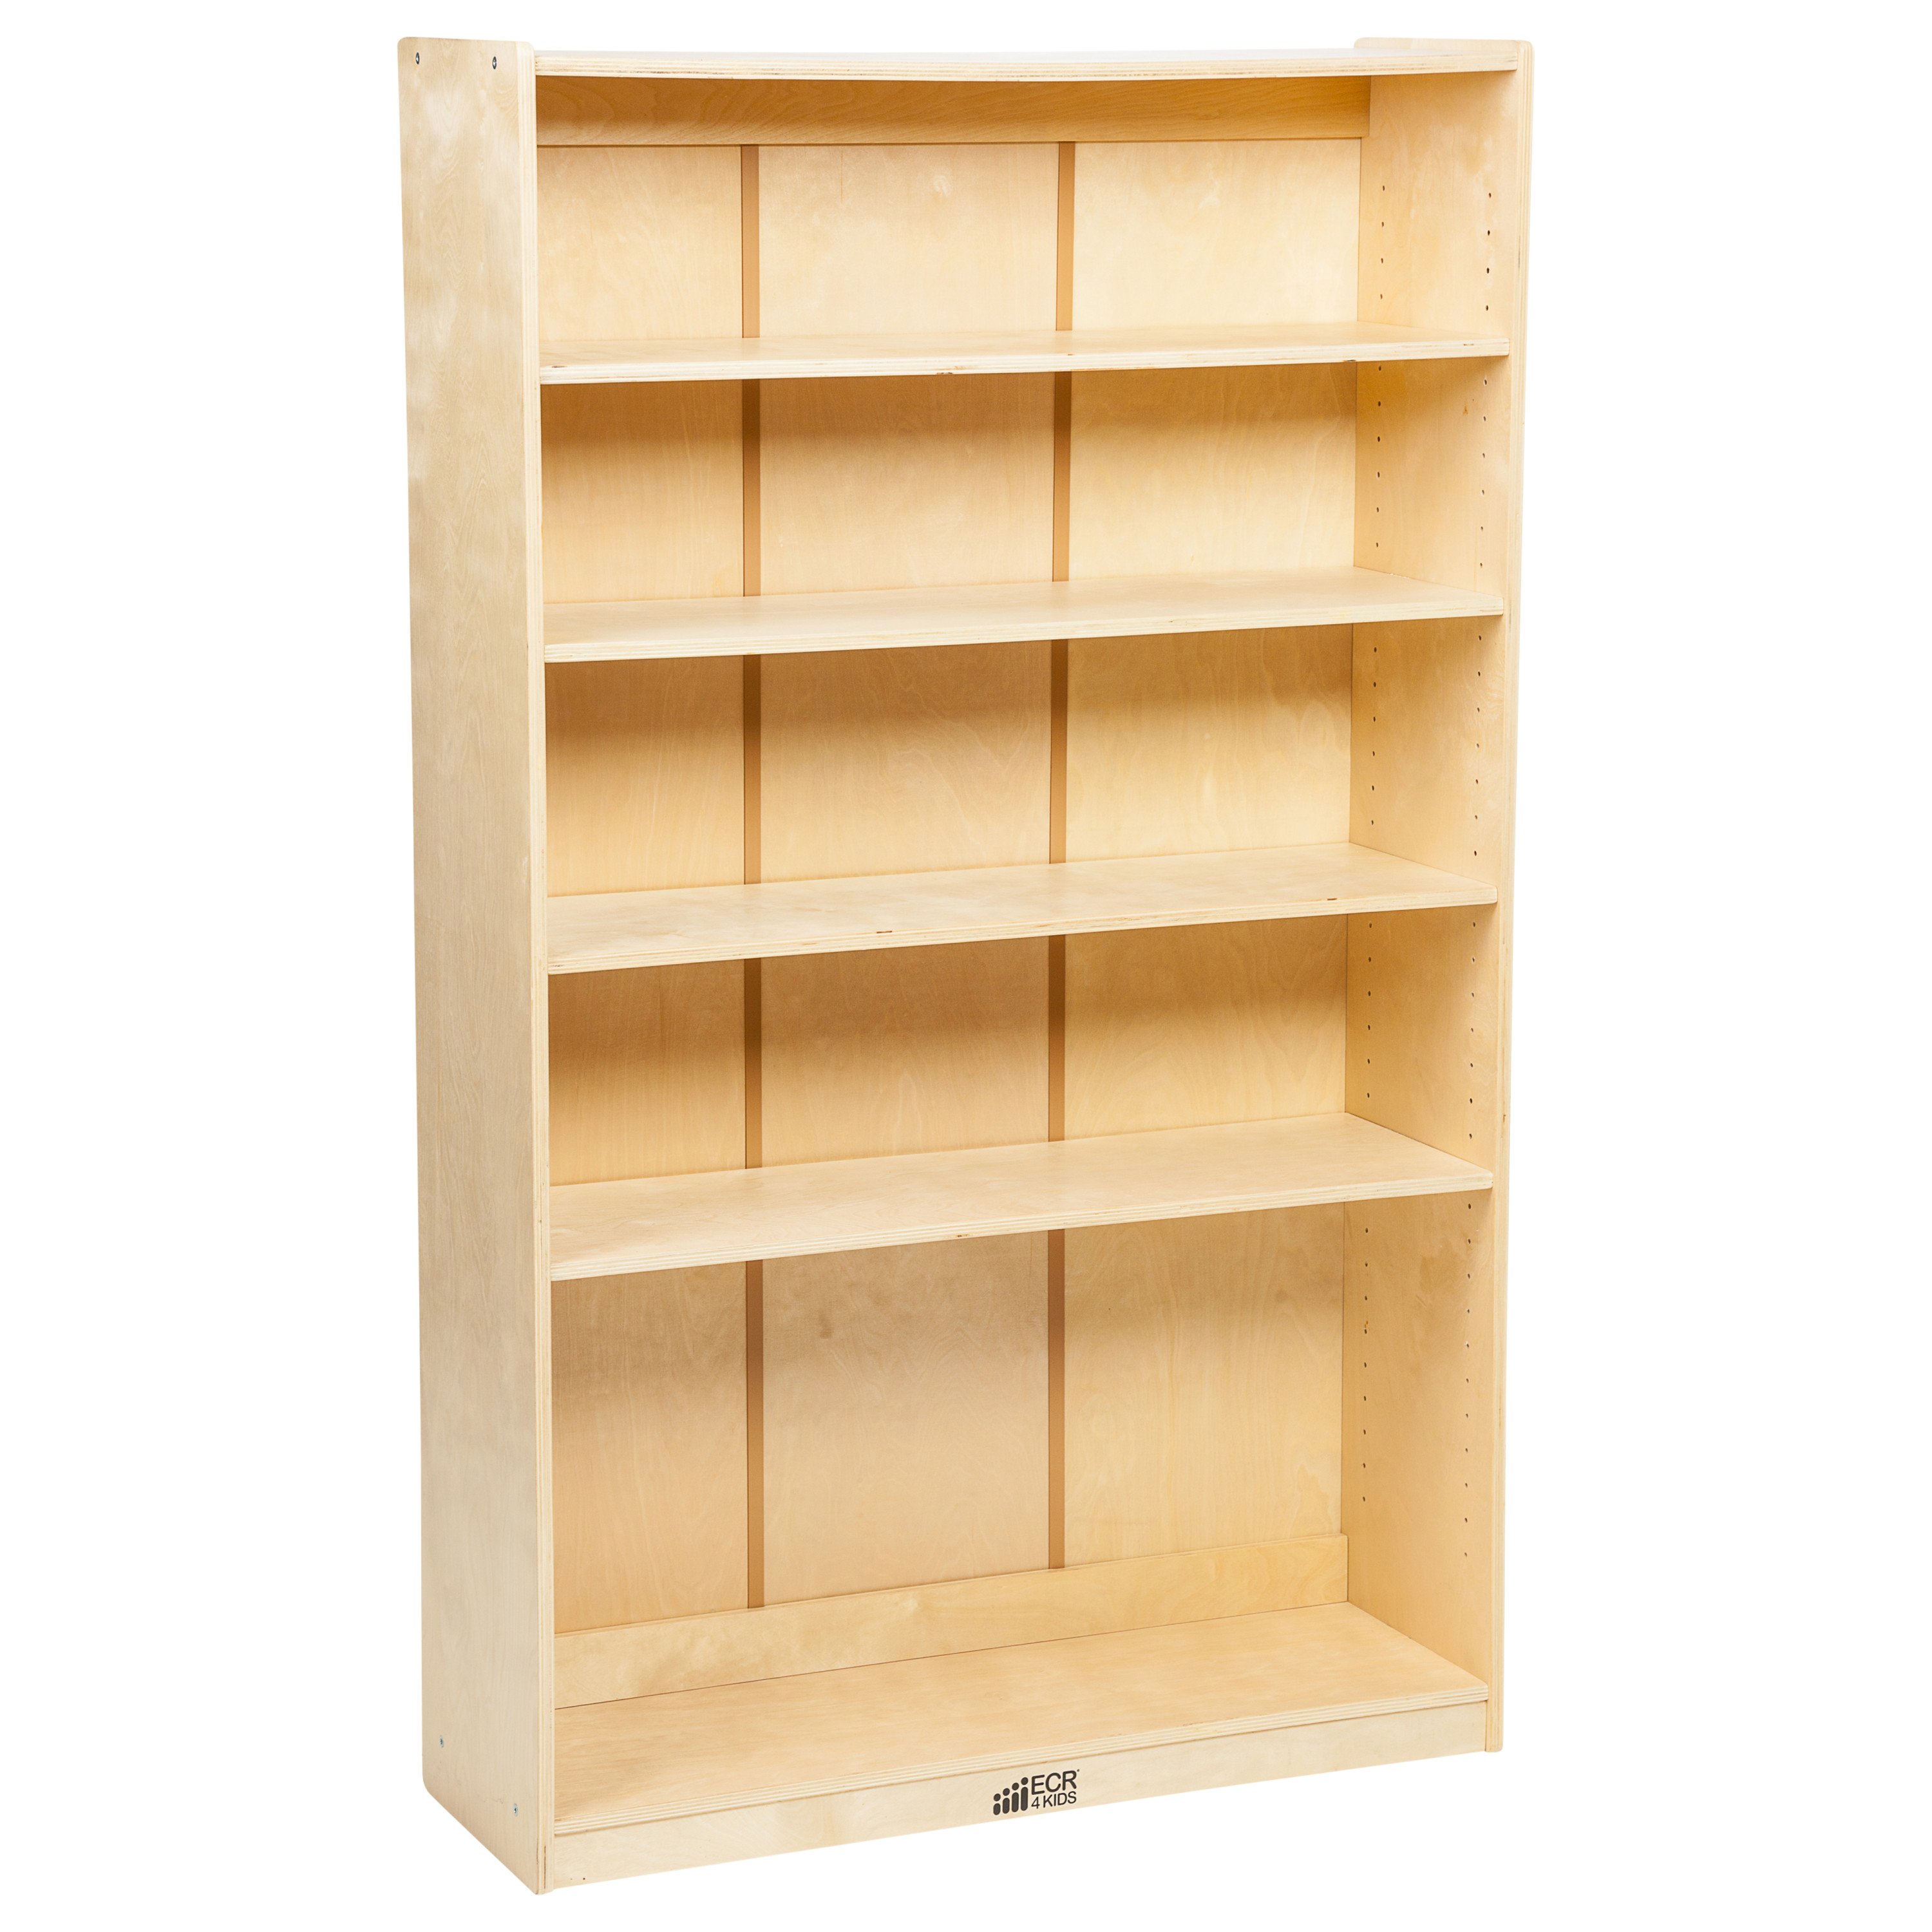 ECR4Kids Classic Birch Kids Bookshelf, 5-Tier with Adjustable Shelves